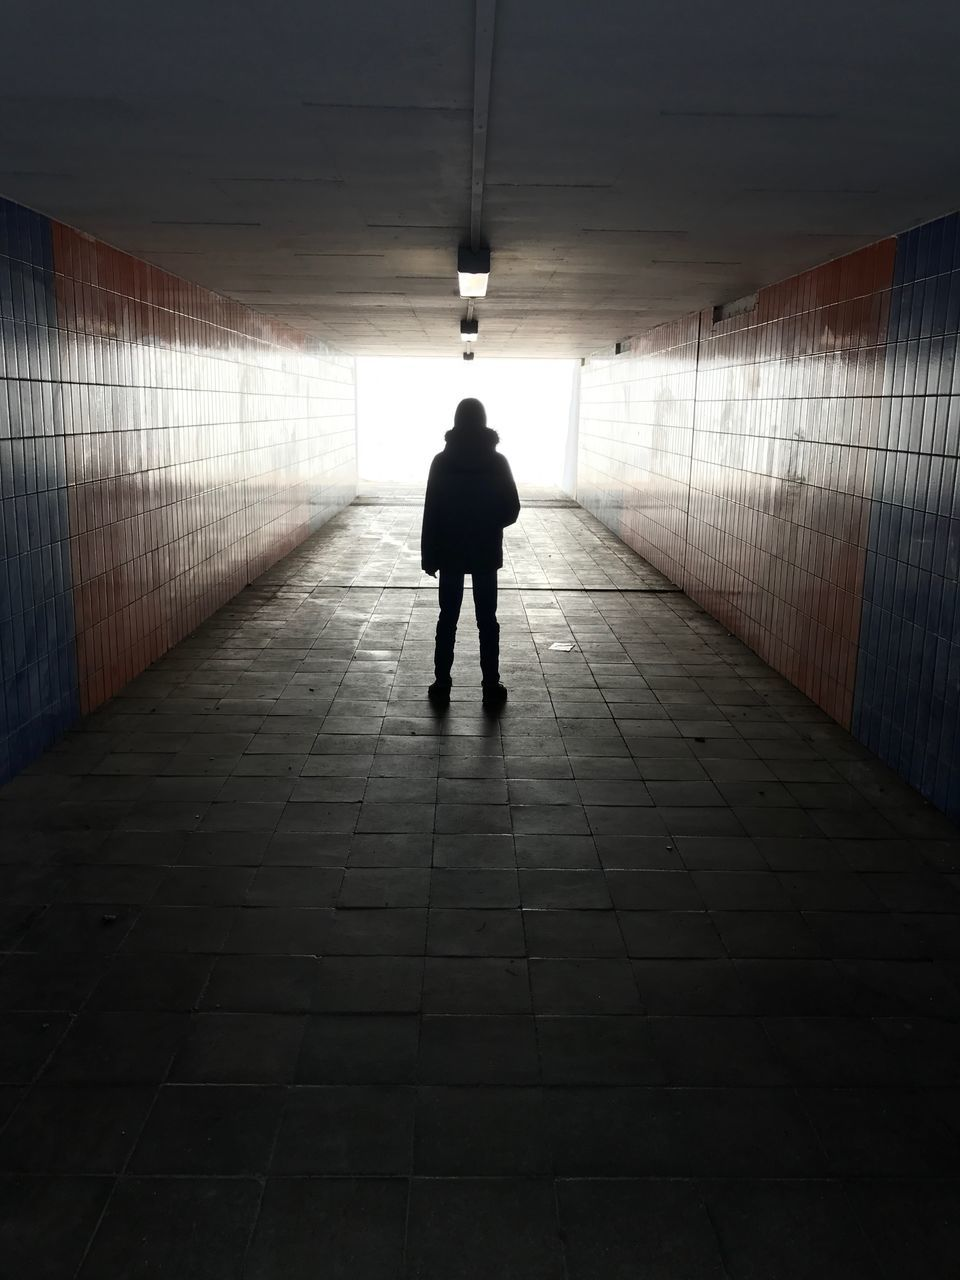 full length, silhouette, real people, rear view, one person, the way forward, indoors, walking, architecture, men, standing, built structure, illuminated, day, people